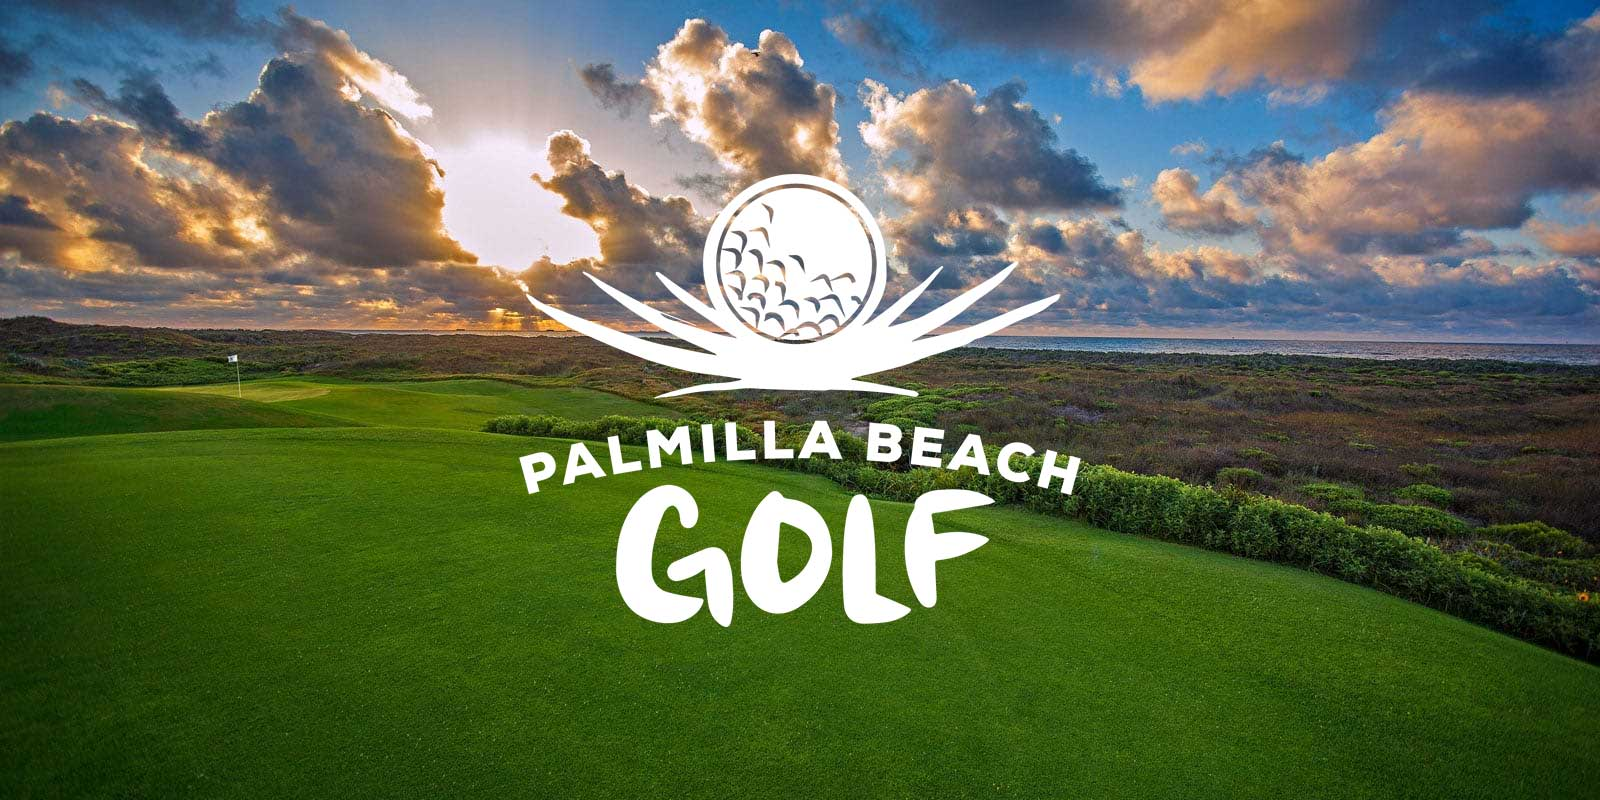 Palmilla Beach Golf grand opening